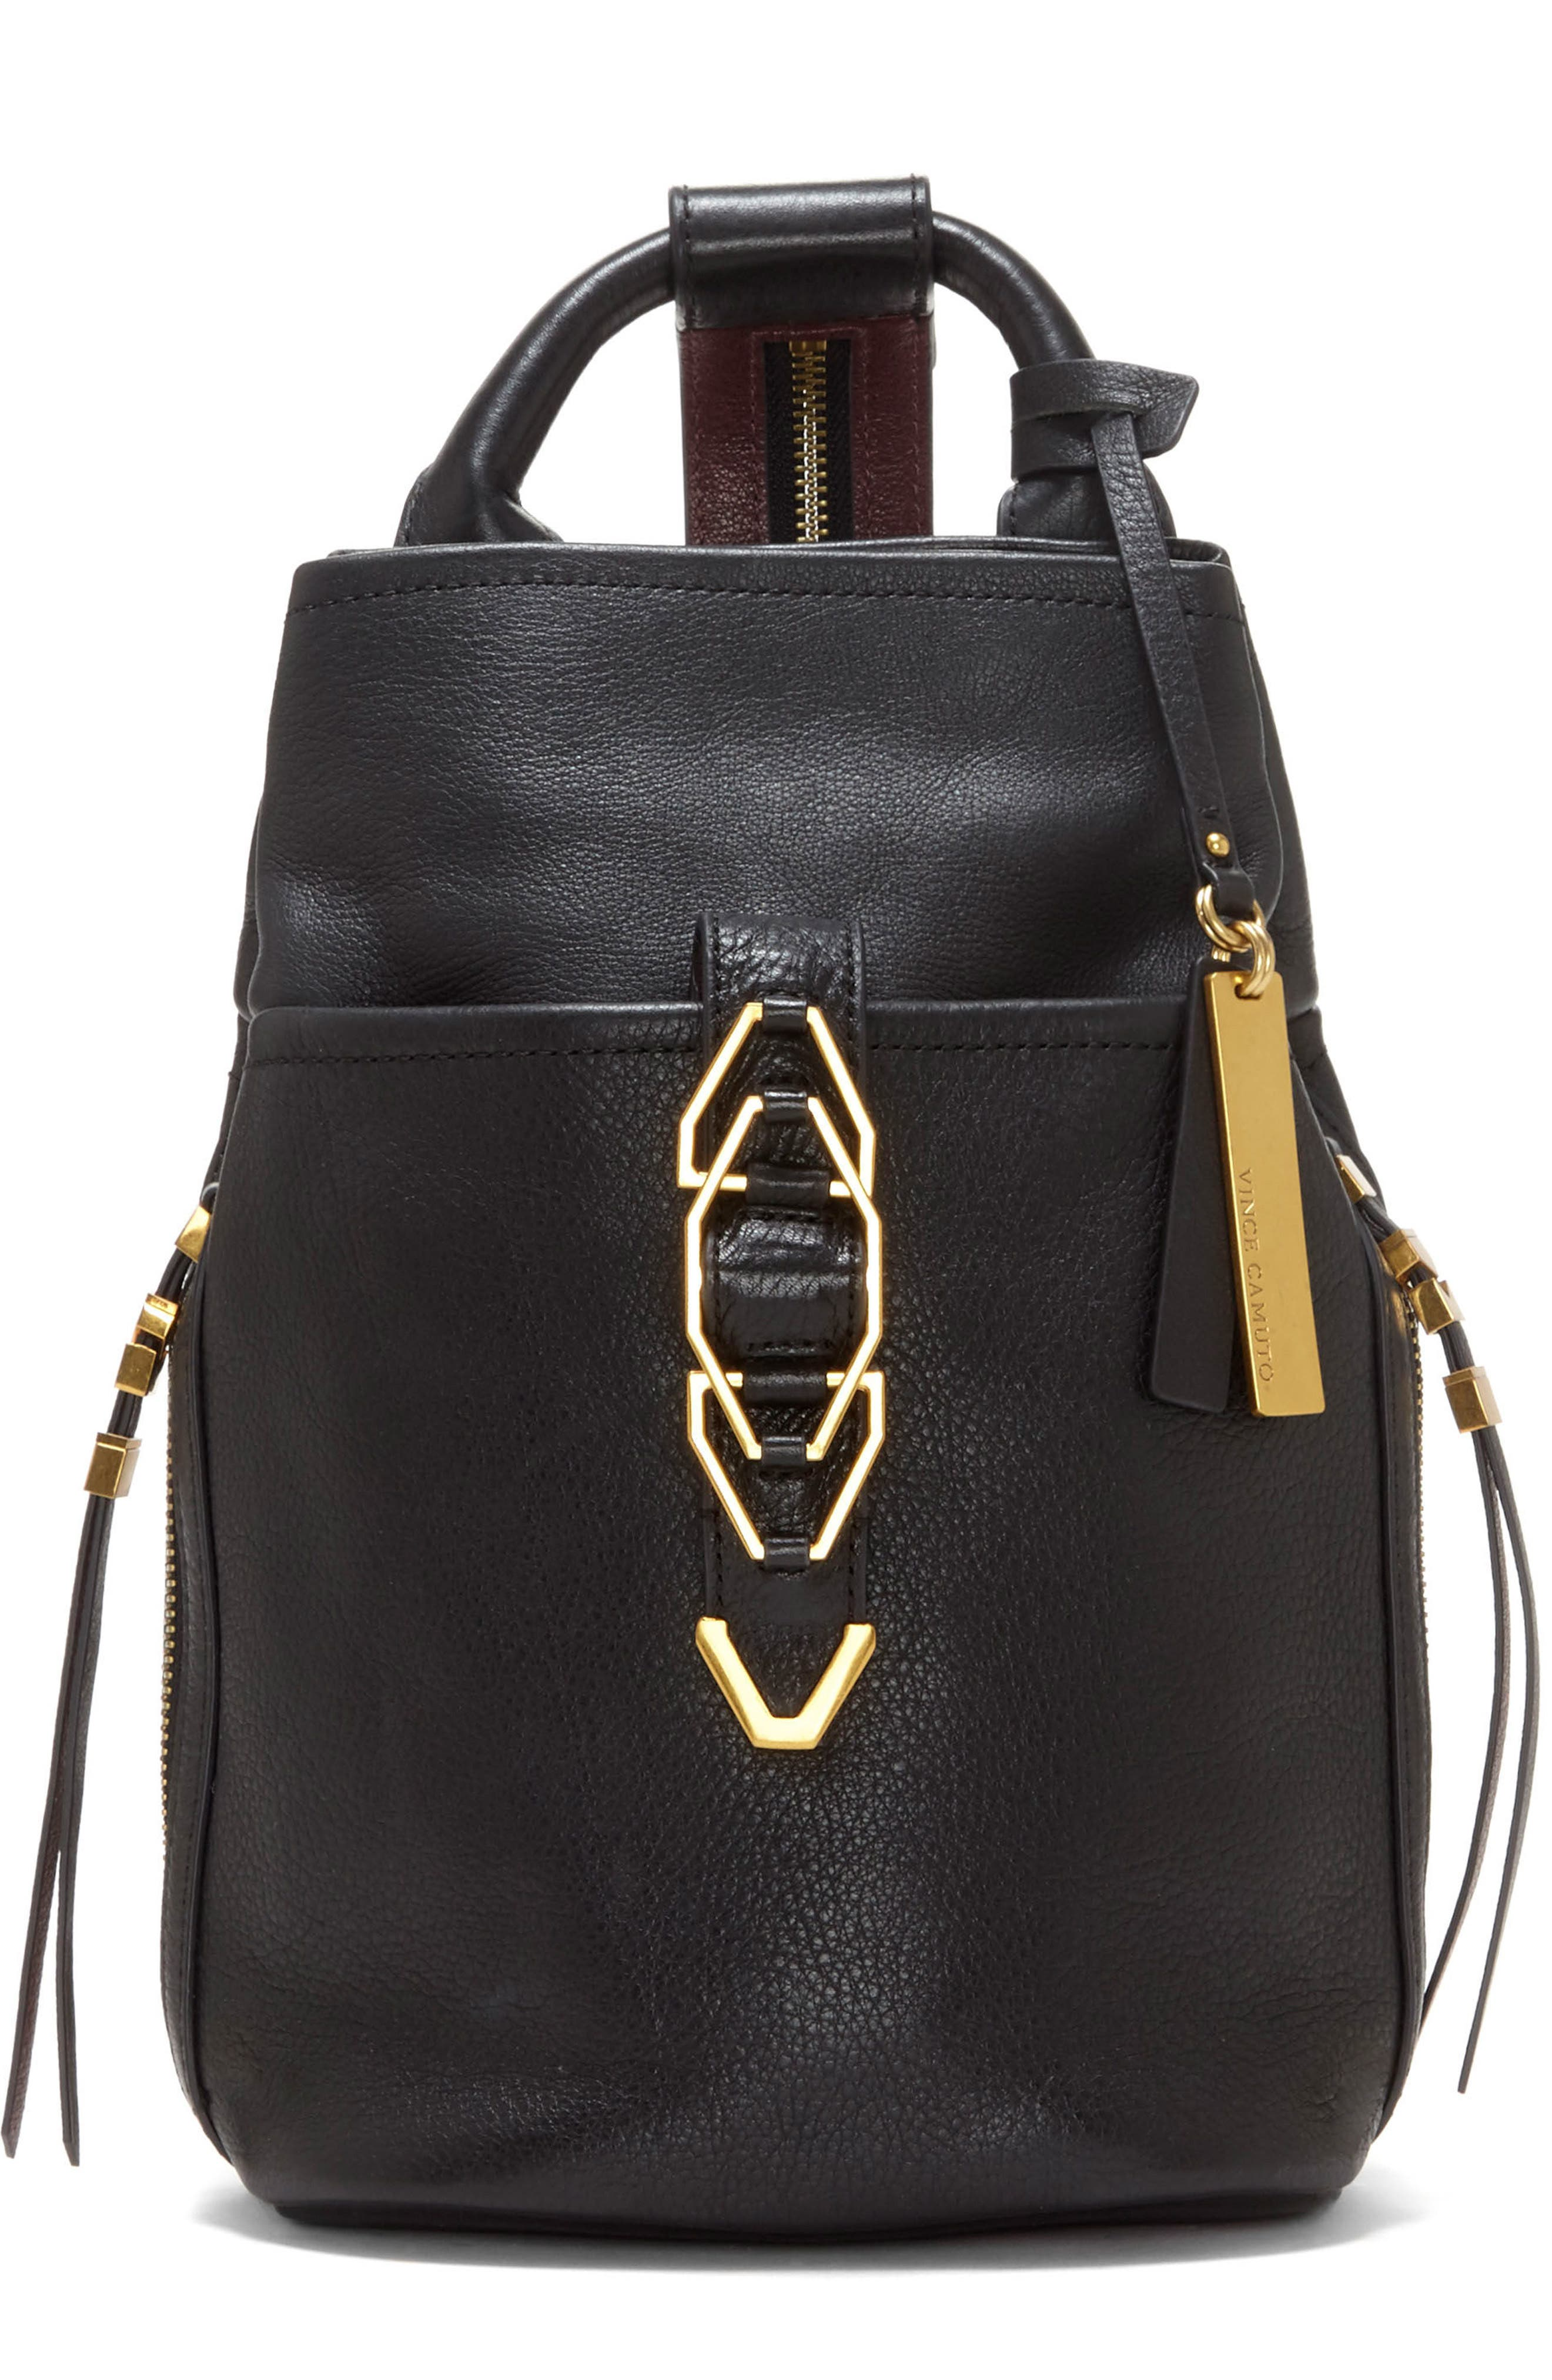 Main Image - Vince Camuto Small Luk Adjustable Leather Backpack